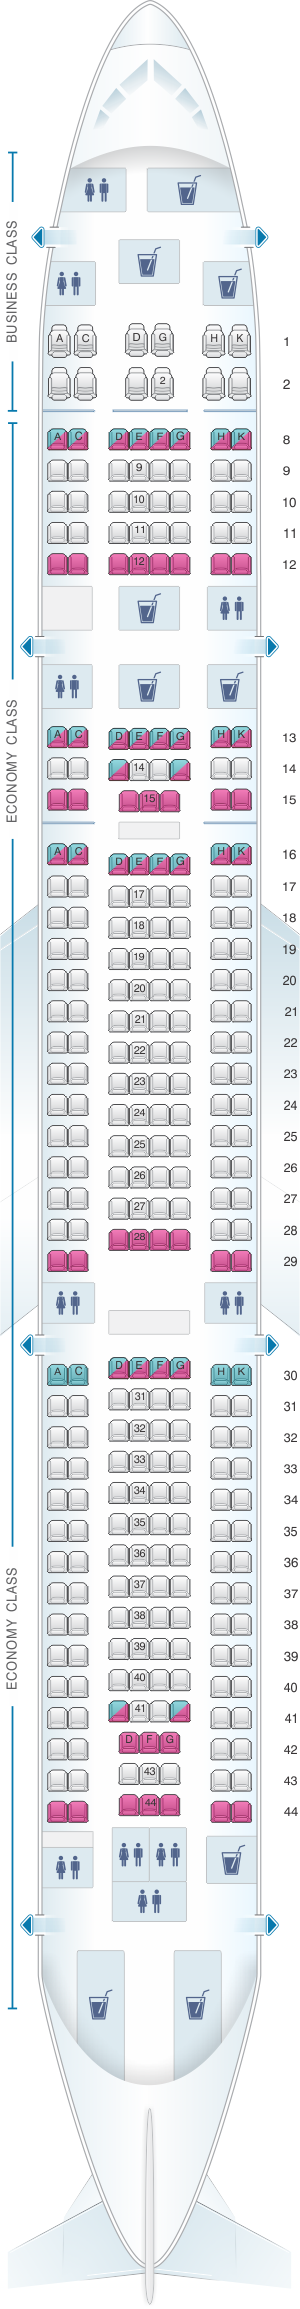 Seat map for Hi Fly Airbus A340 300 TQM 300pax